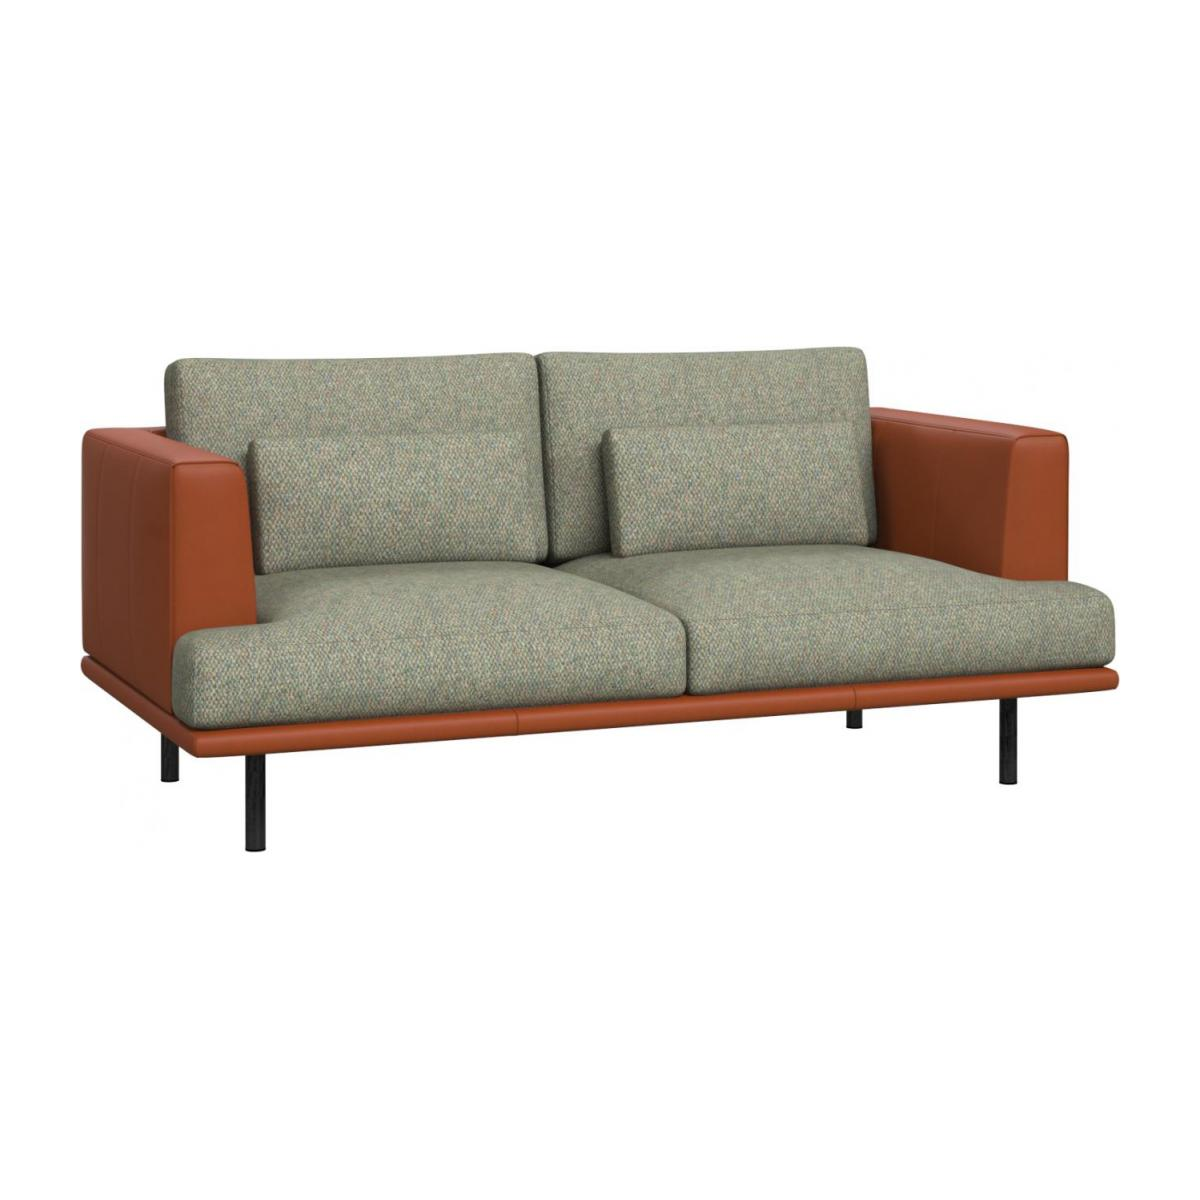 2 seater sofa in Bellagio fabric, organic green with base and armrests in brown leather n°1